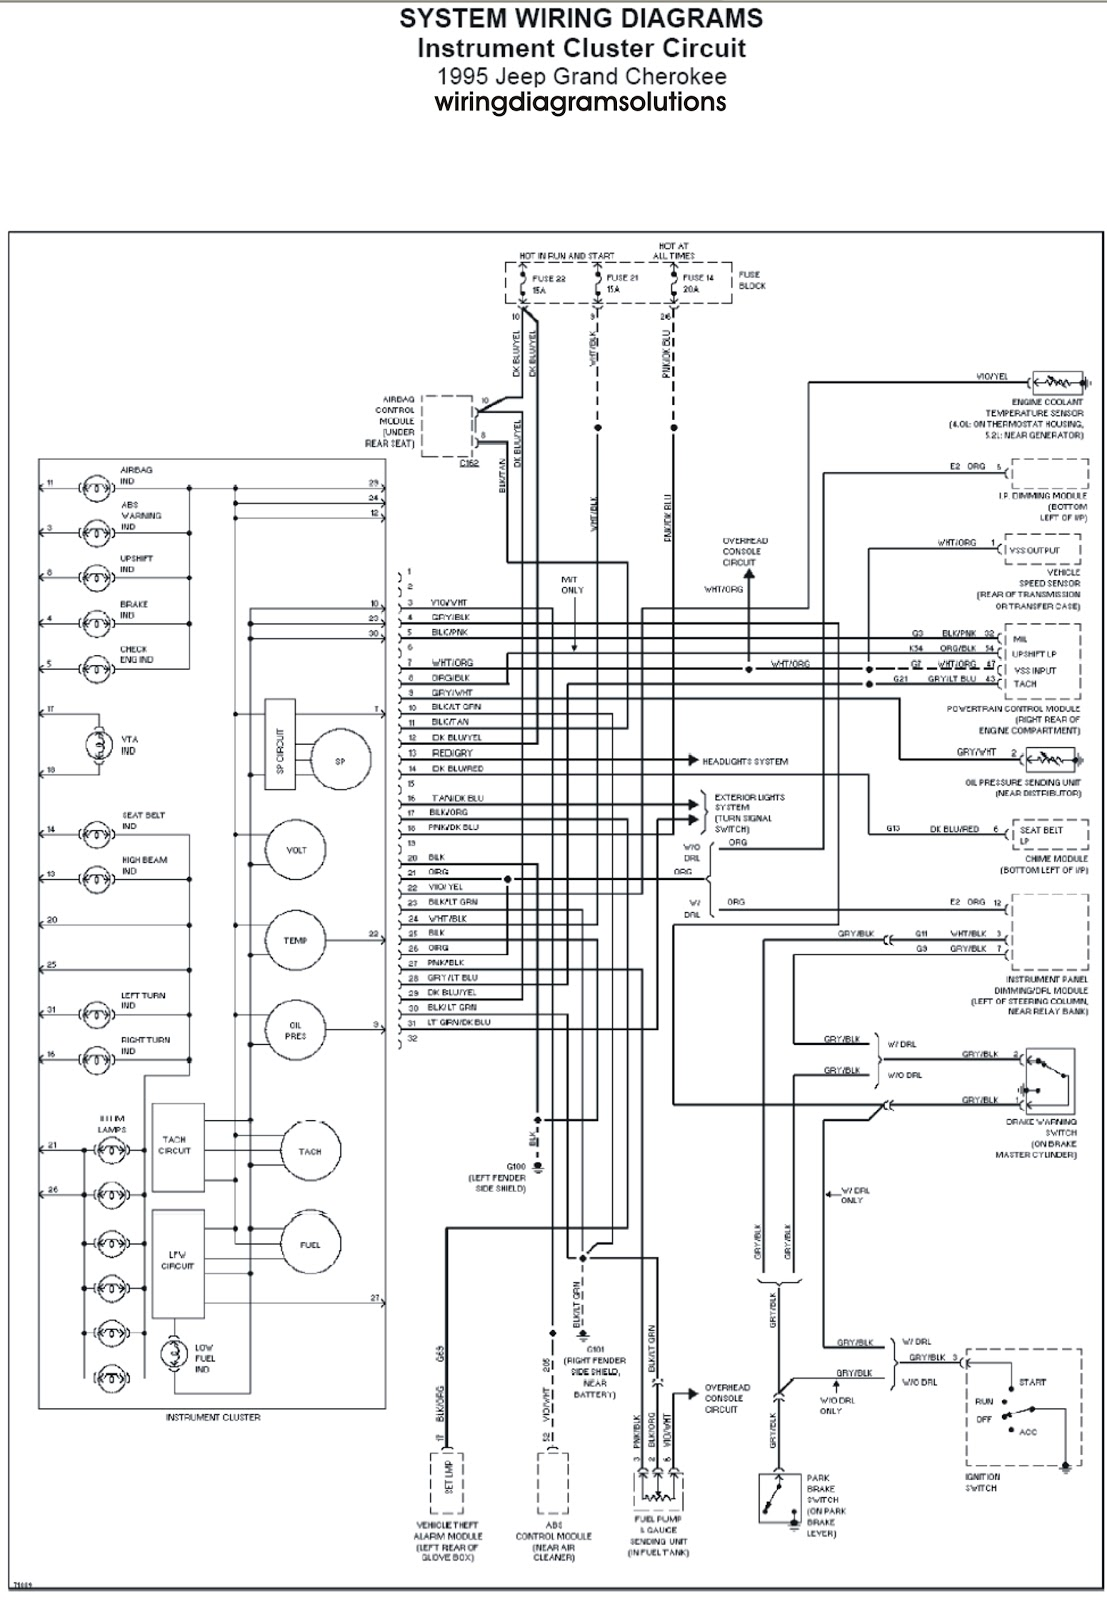 hight resolution of 08 wrangler instrument cluster wire diagram wiring library 1998 jeep 4 0 wiring schematic simple wiring